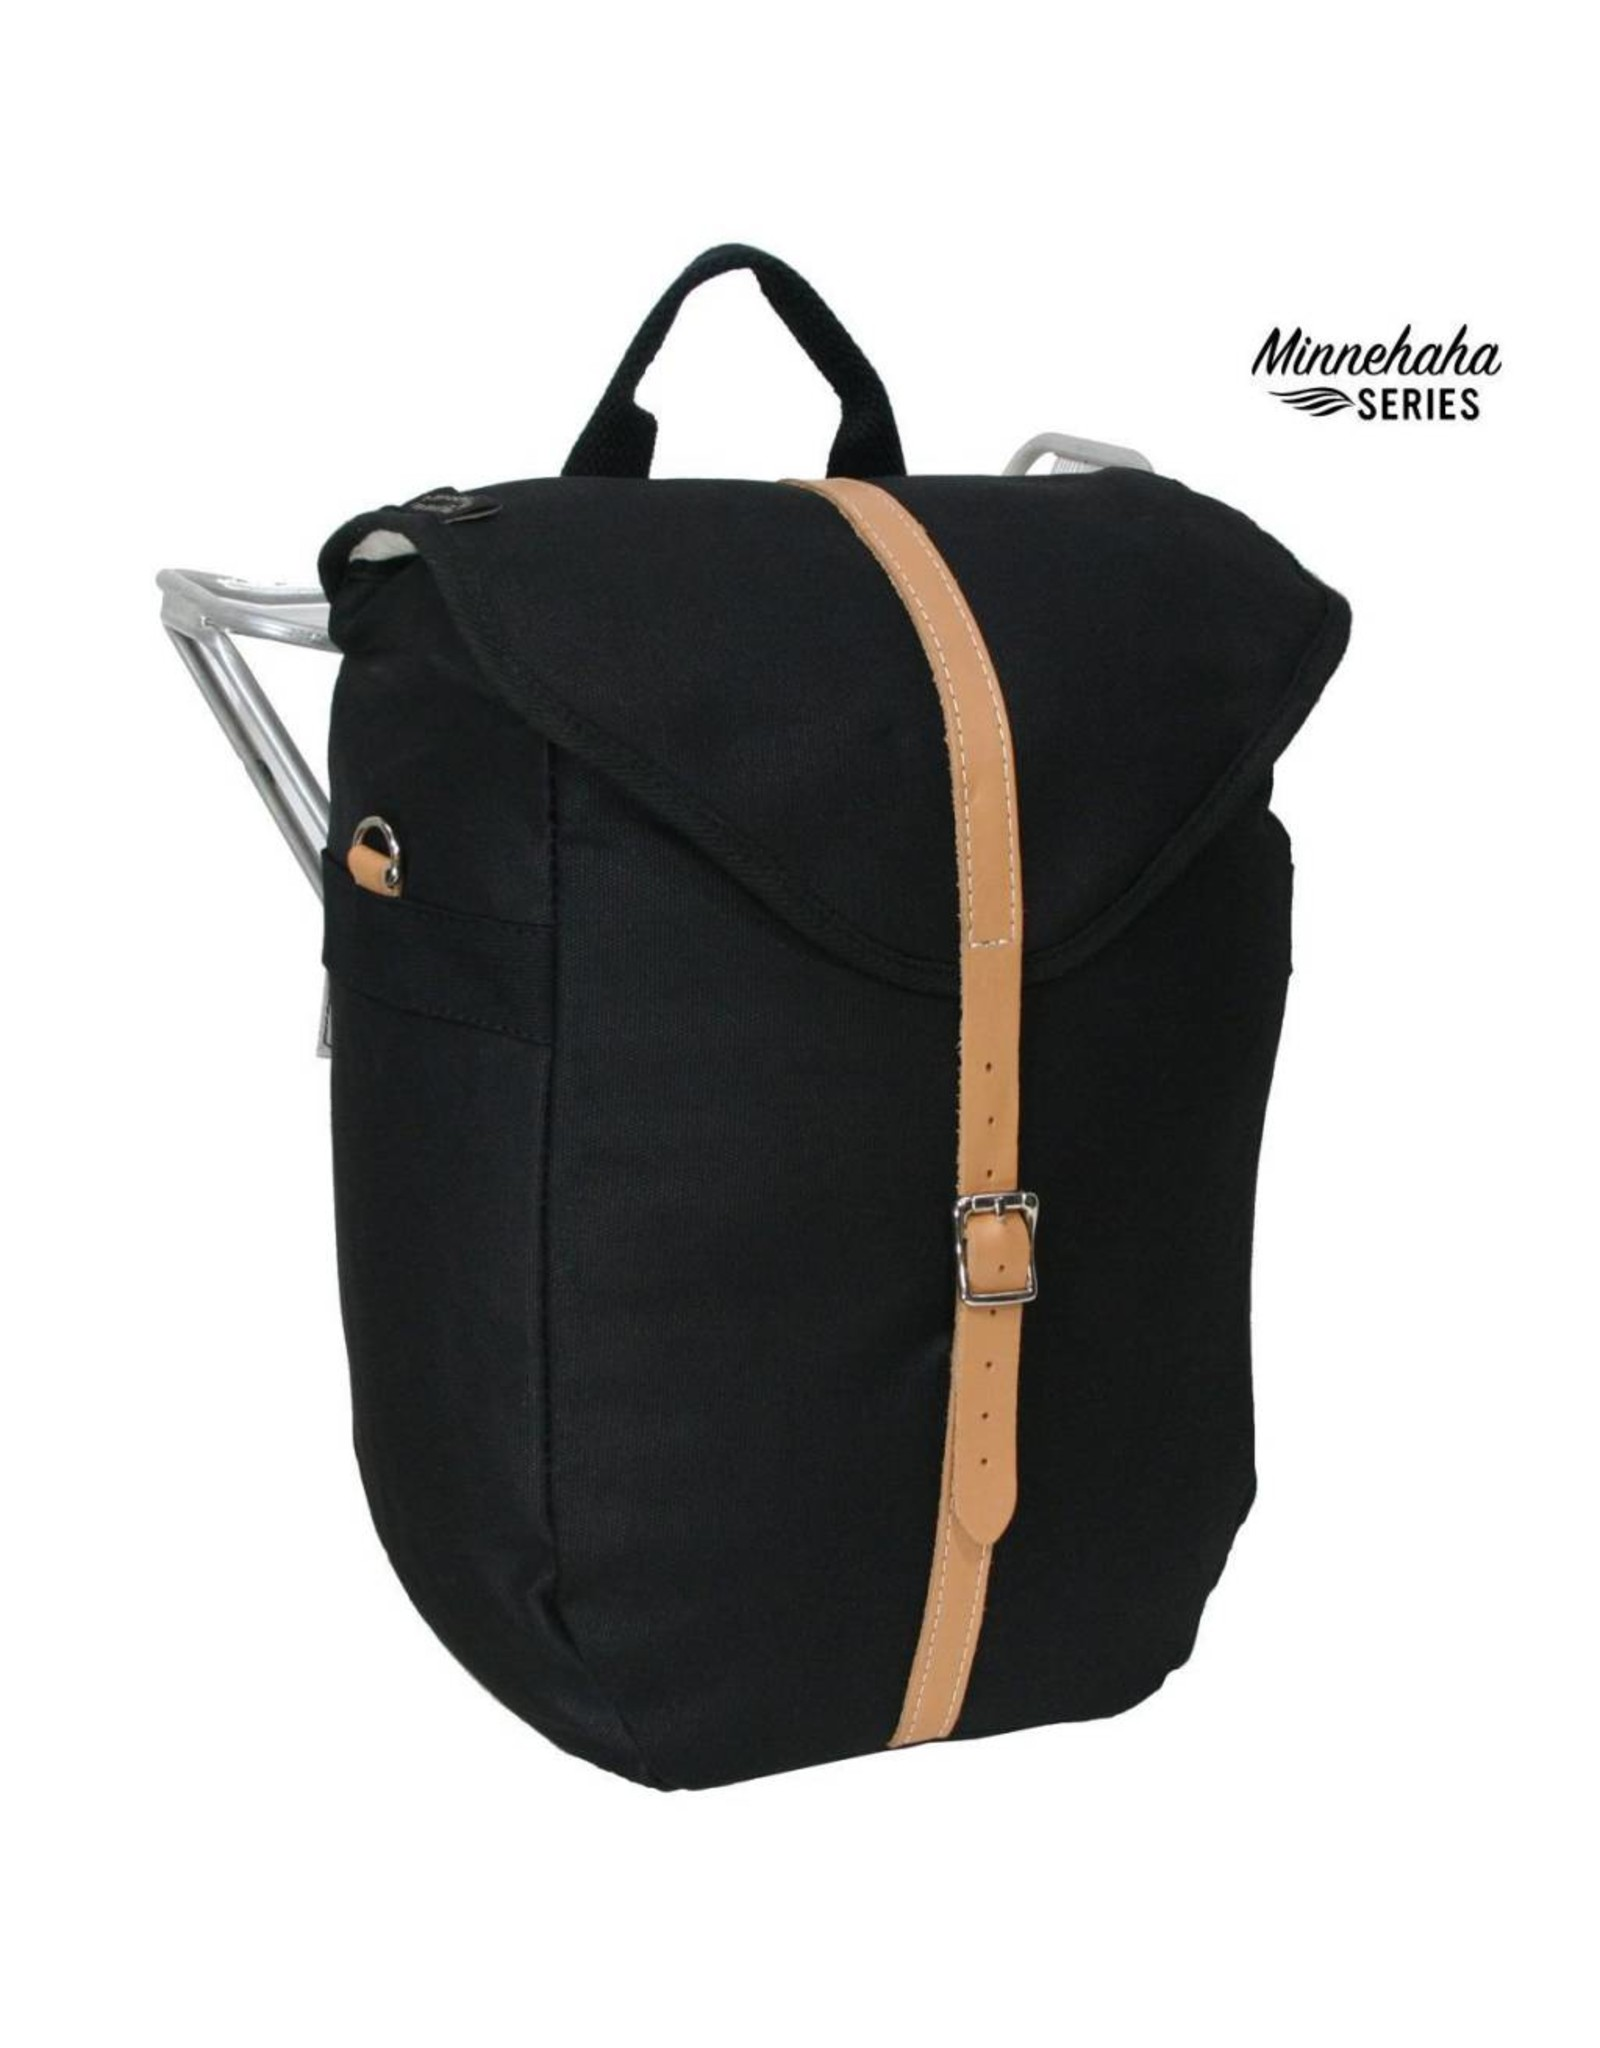 Banjo Brothers Minnehaha Series Utility Pannier - Black